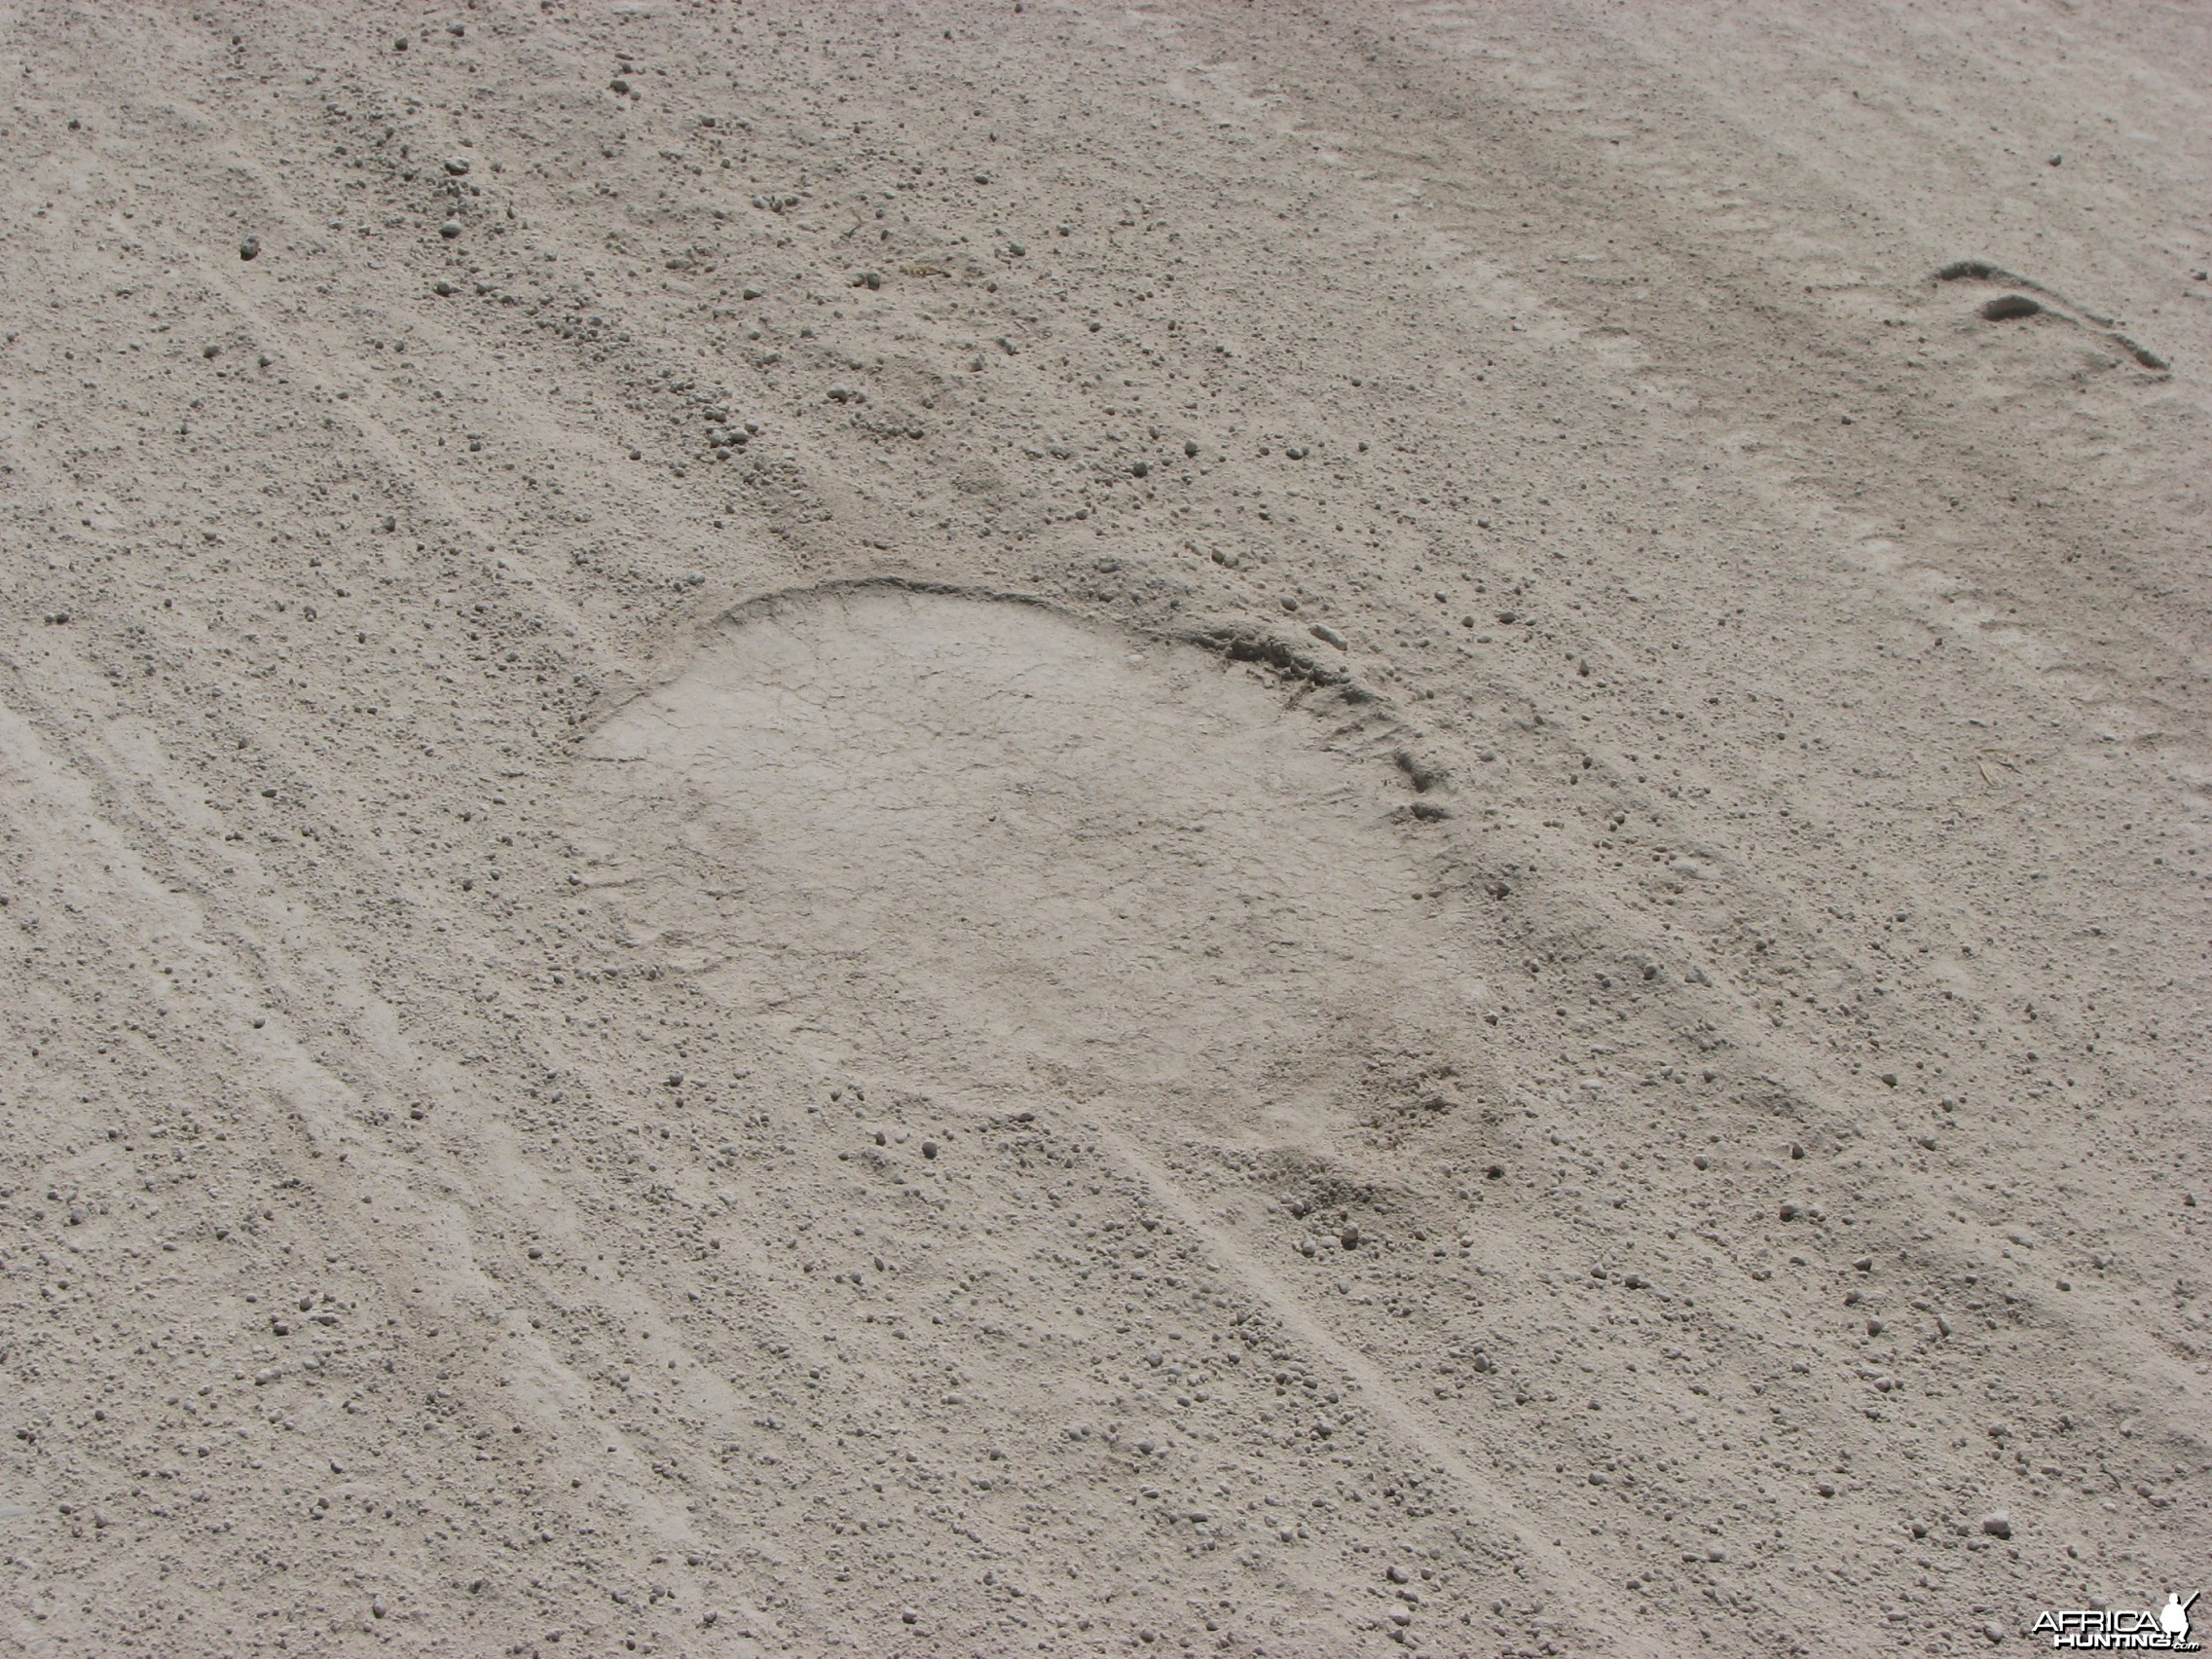 Elephant track at Etosha National Park, Namibia